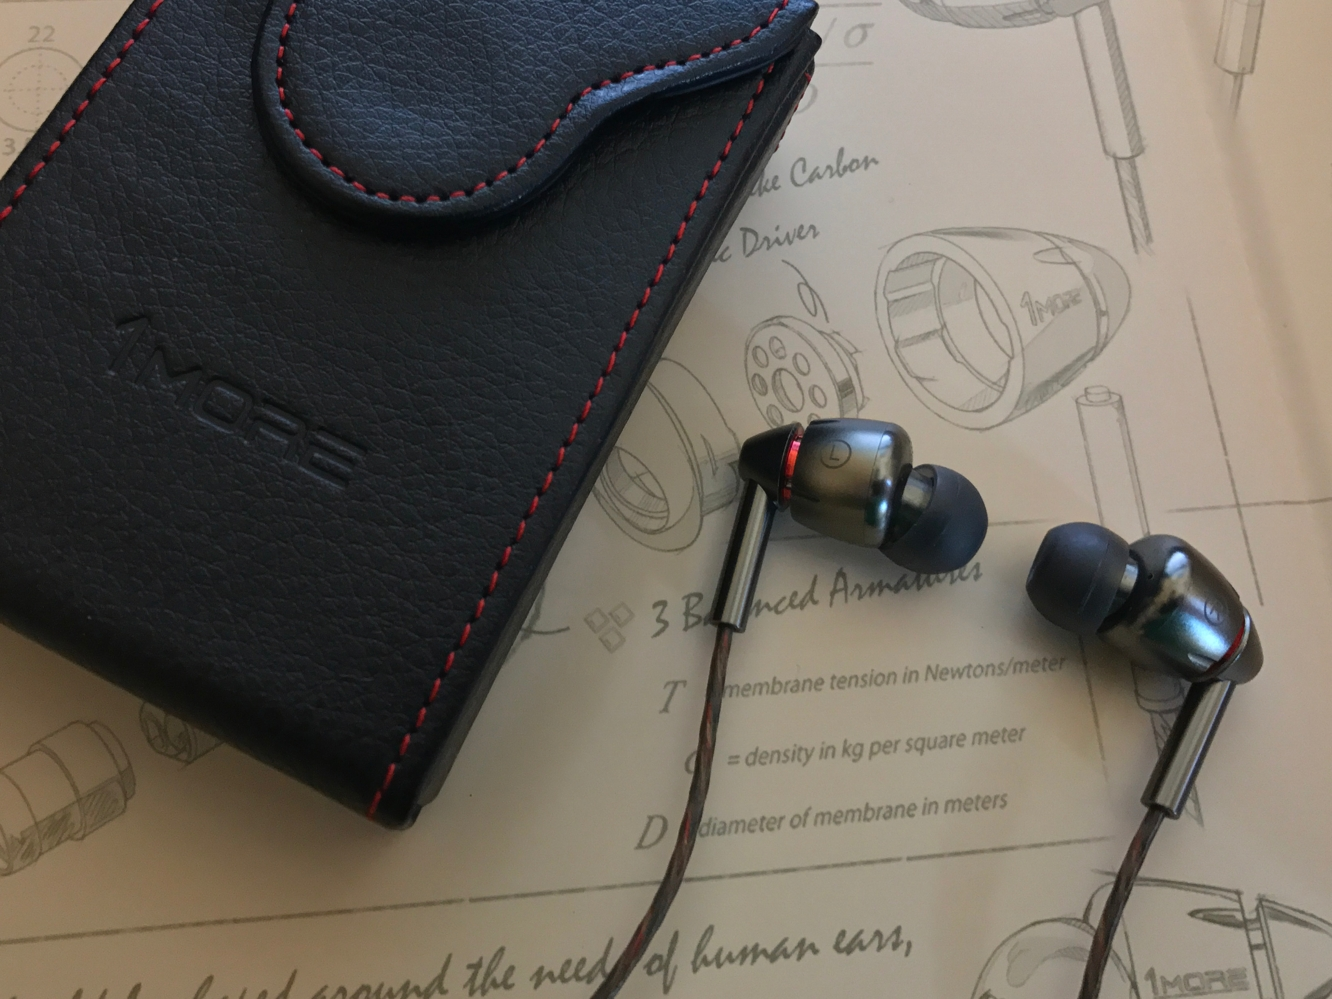 Review: 1More Quad Driver In-Ear Headphones